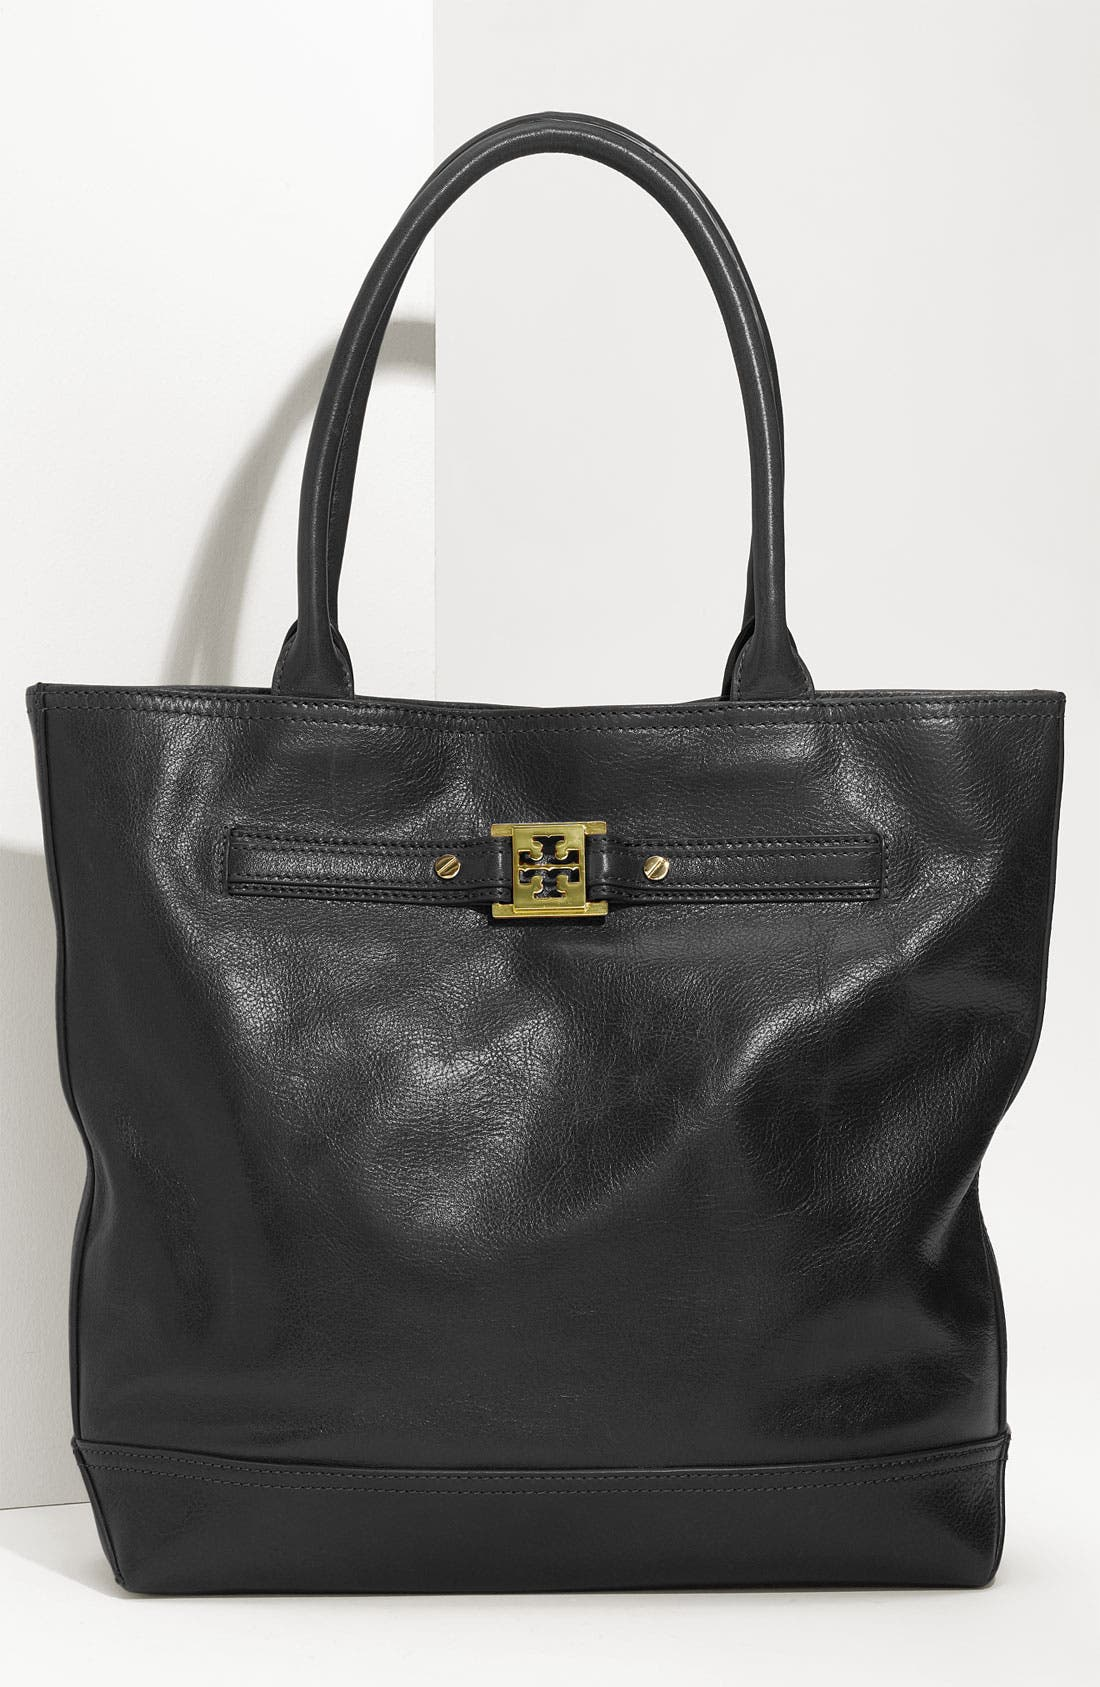 Main Image - Tory Burch Leather Tote